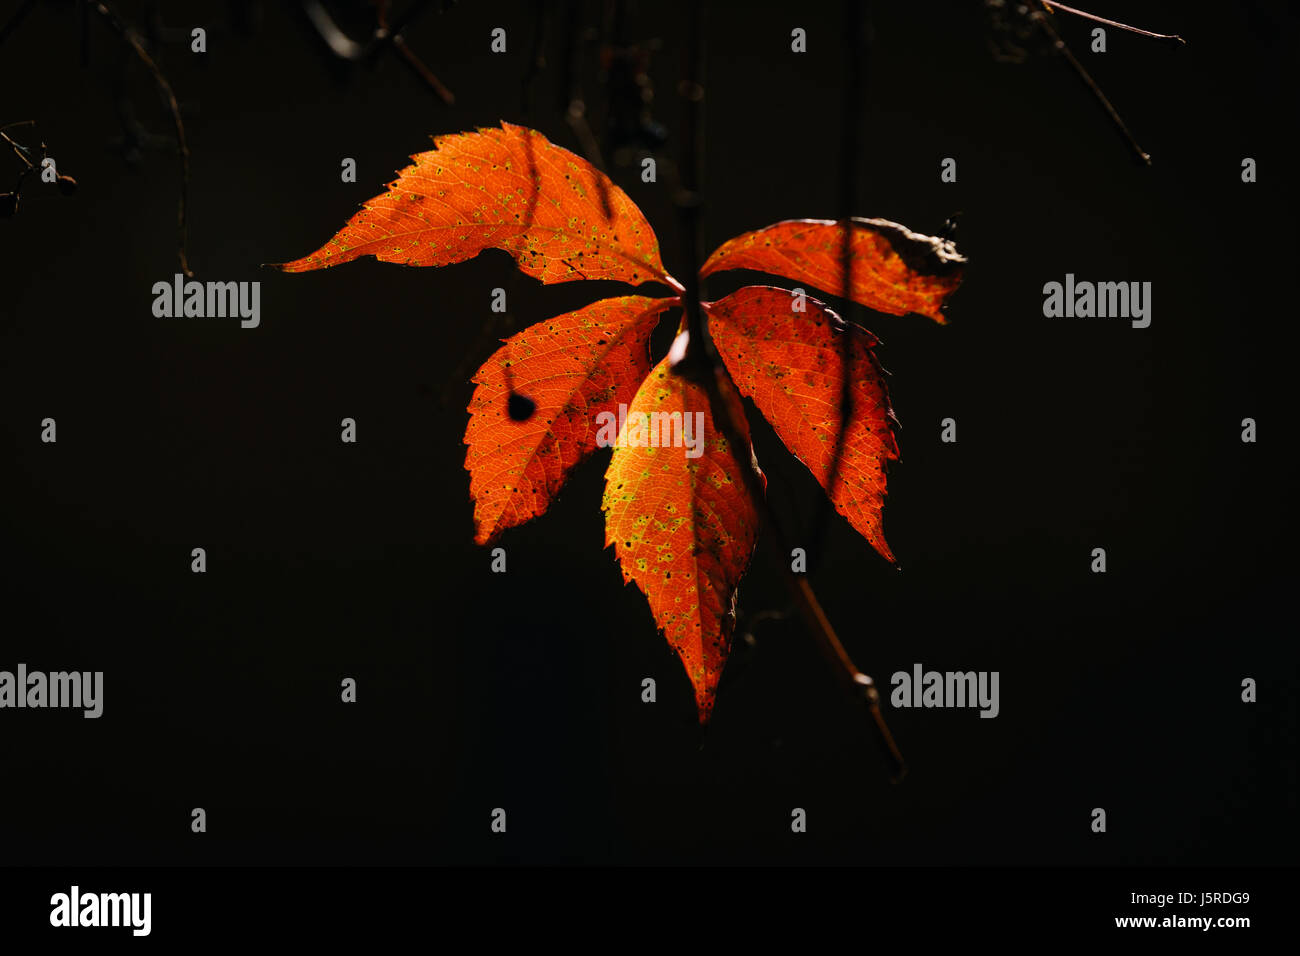 Close up of an orange and red leaf during autumn - Stock Image